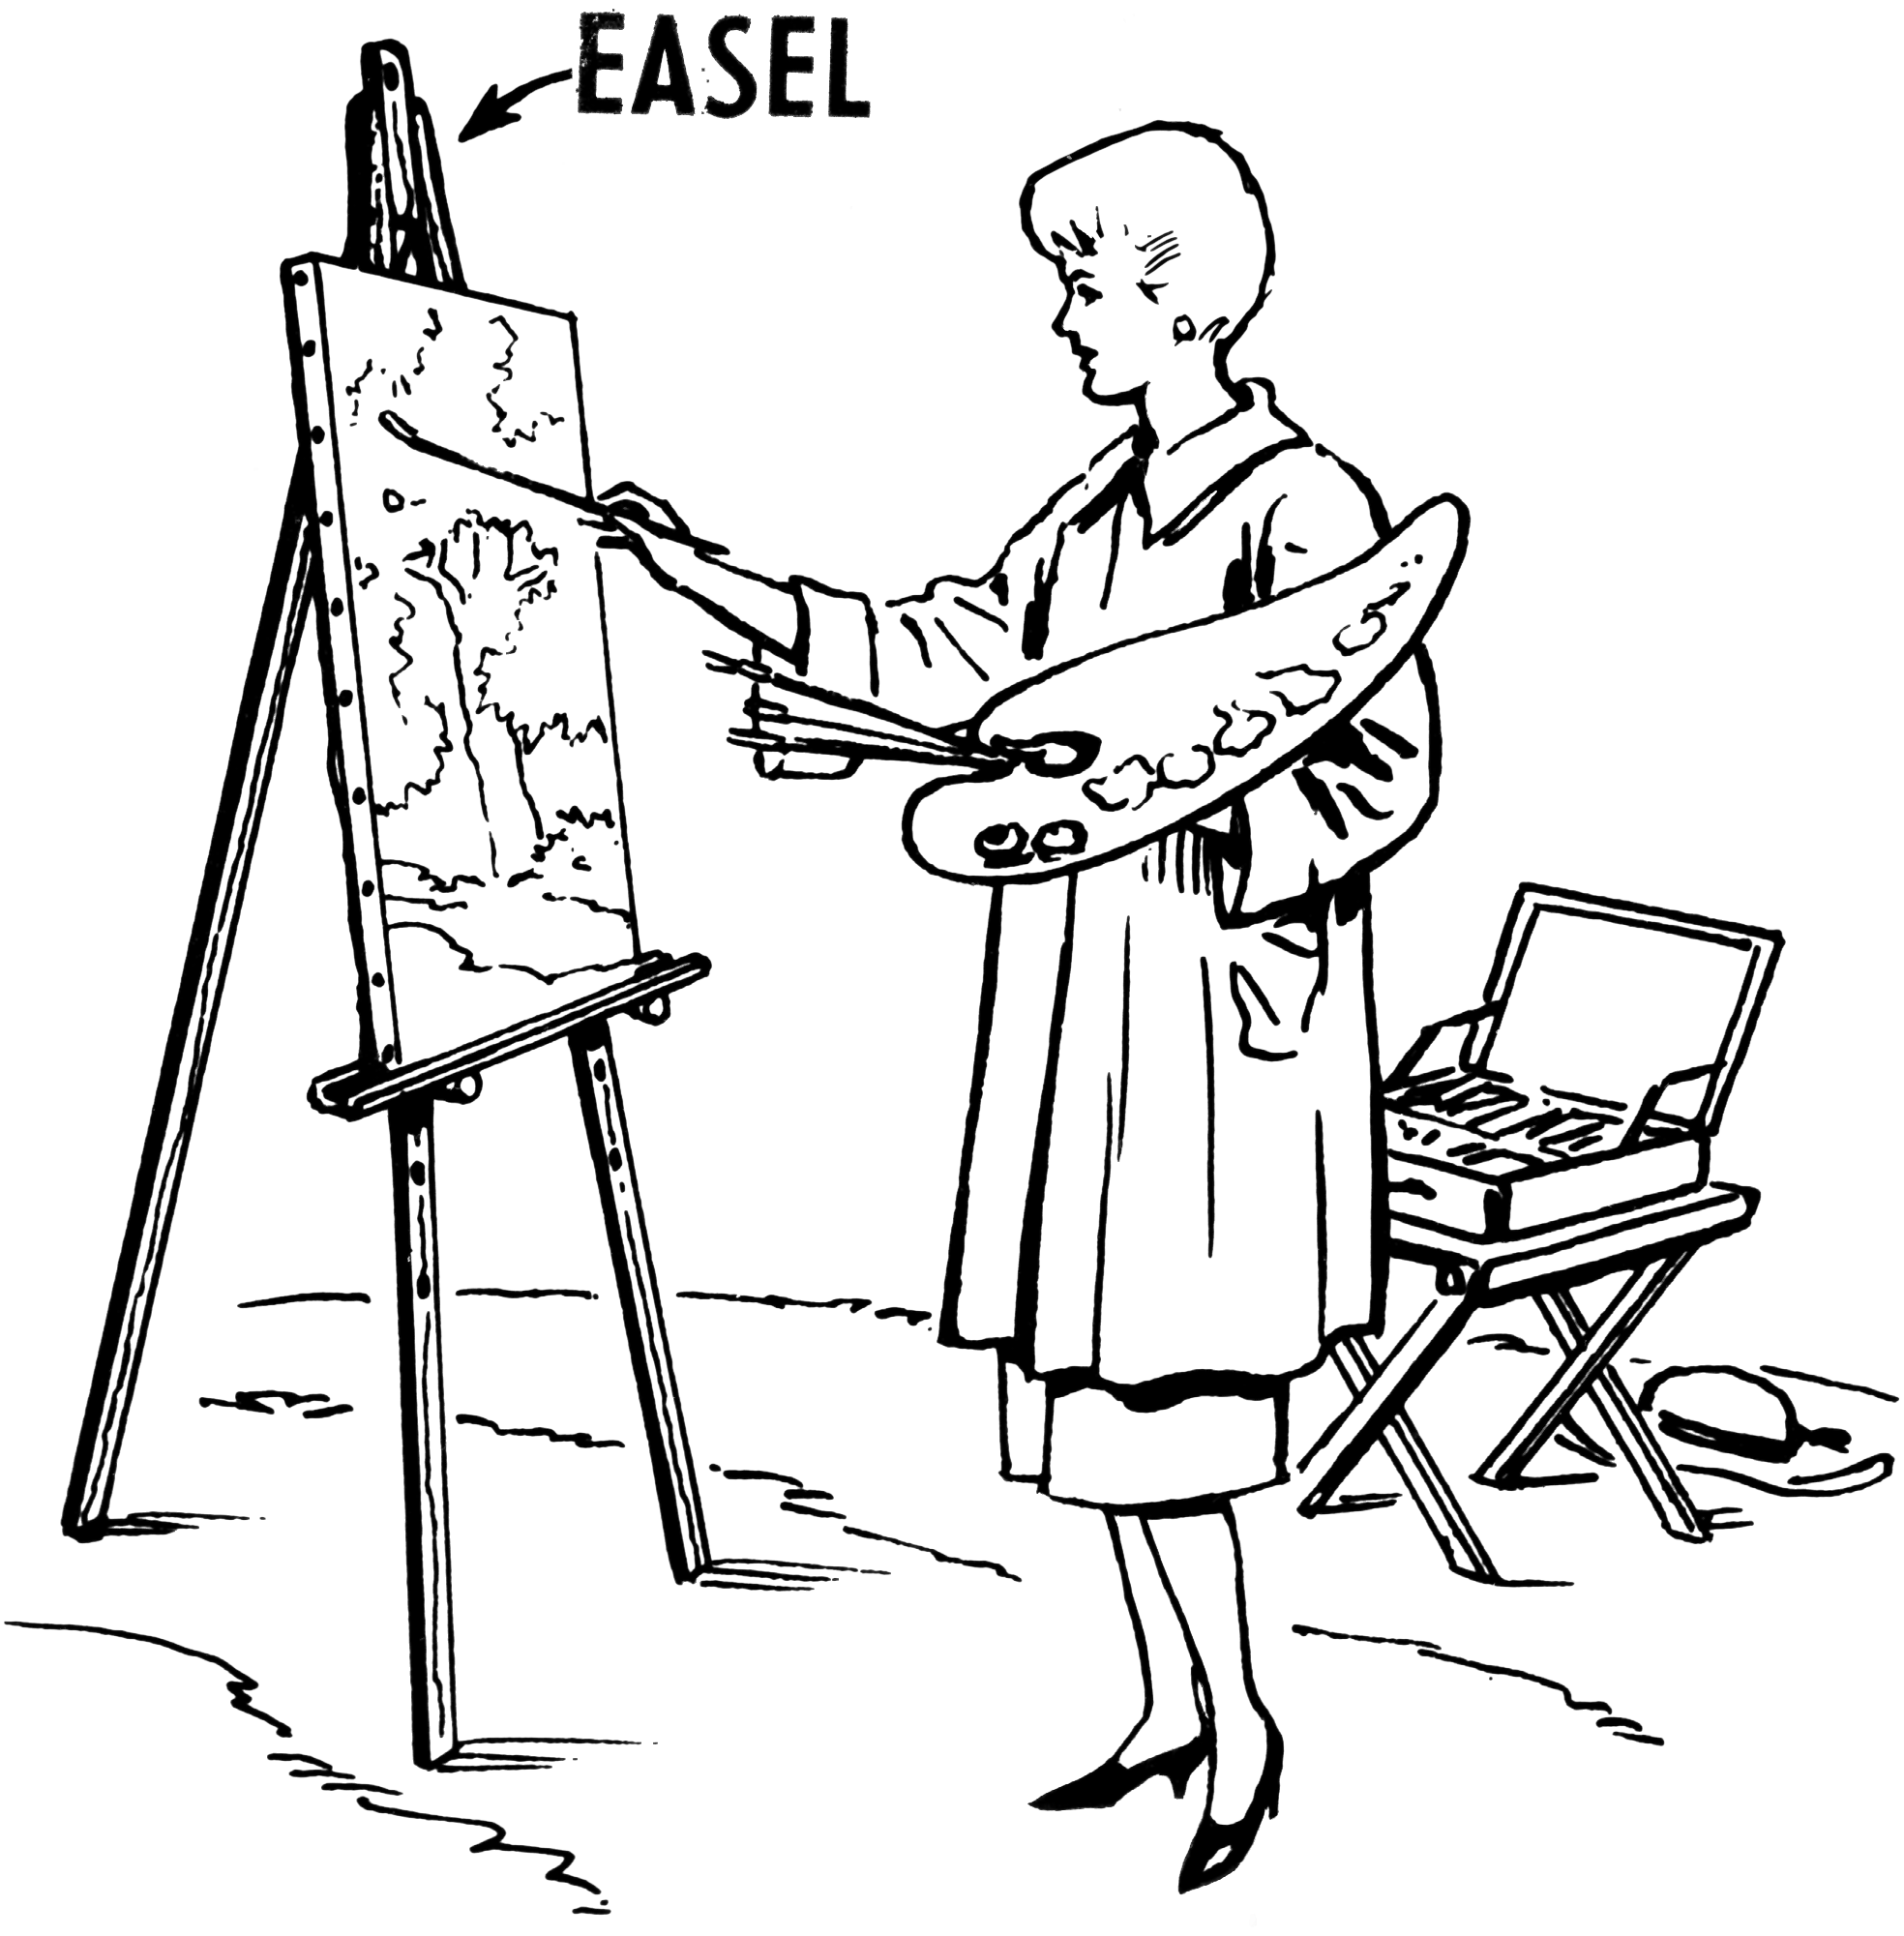 file easel 1 psf png wikimedia commons